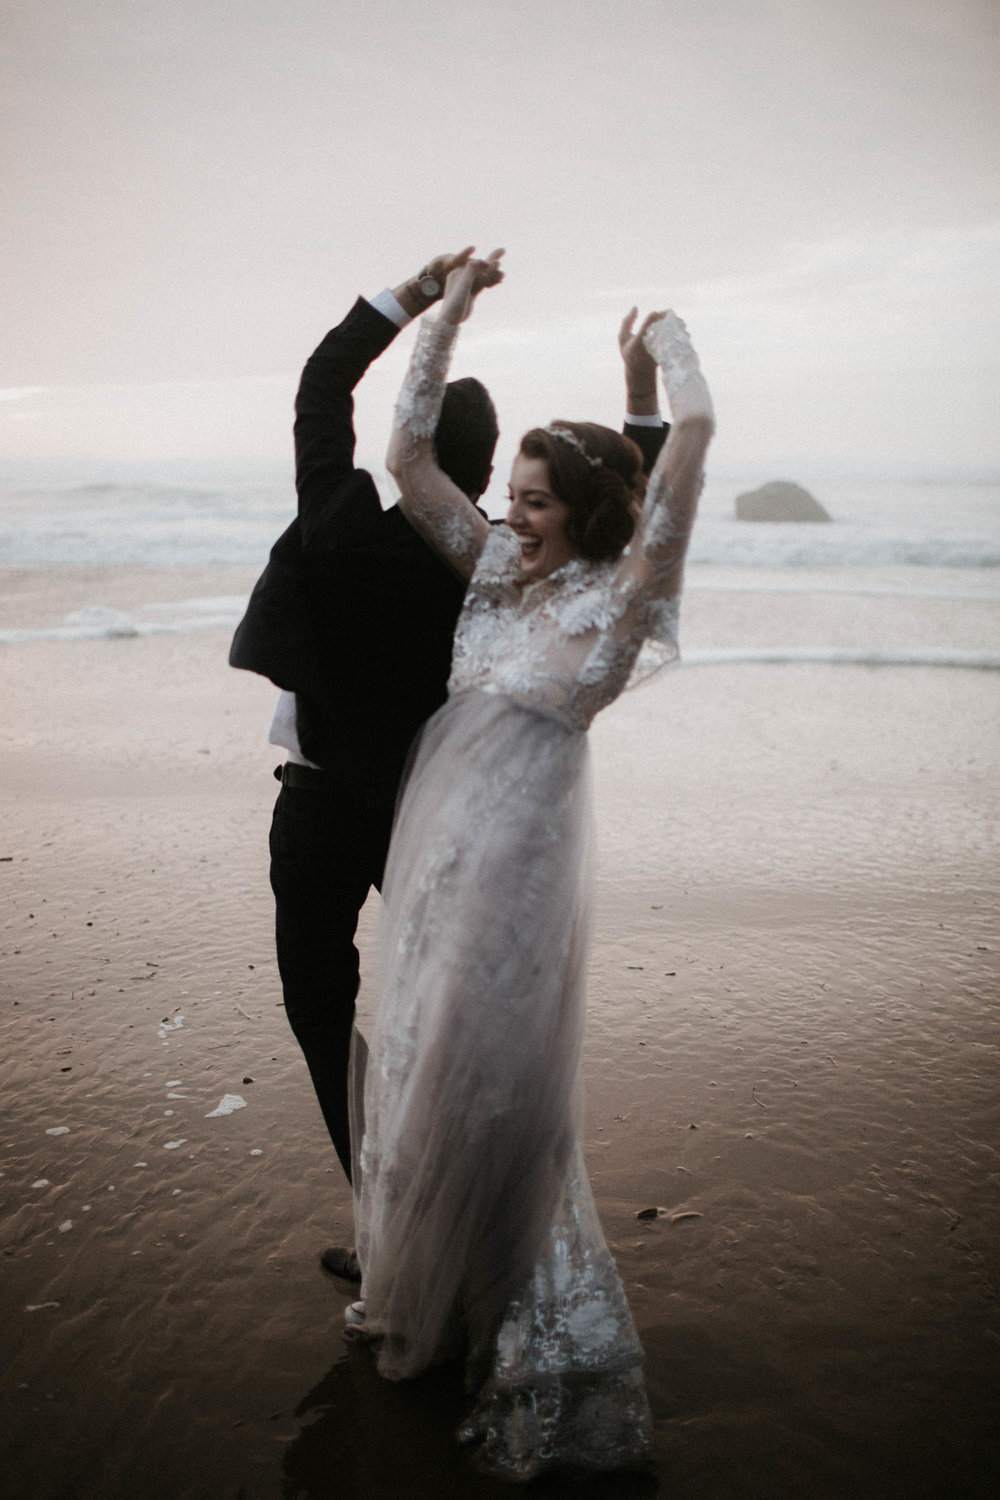 canonbeach_elopment_weddingphotographer-65.jpg